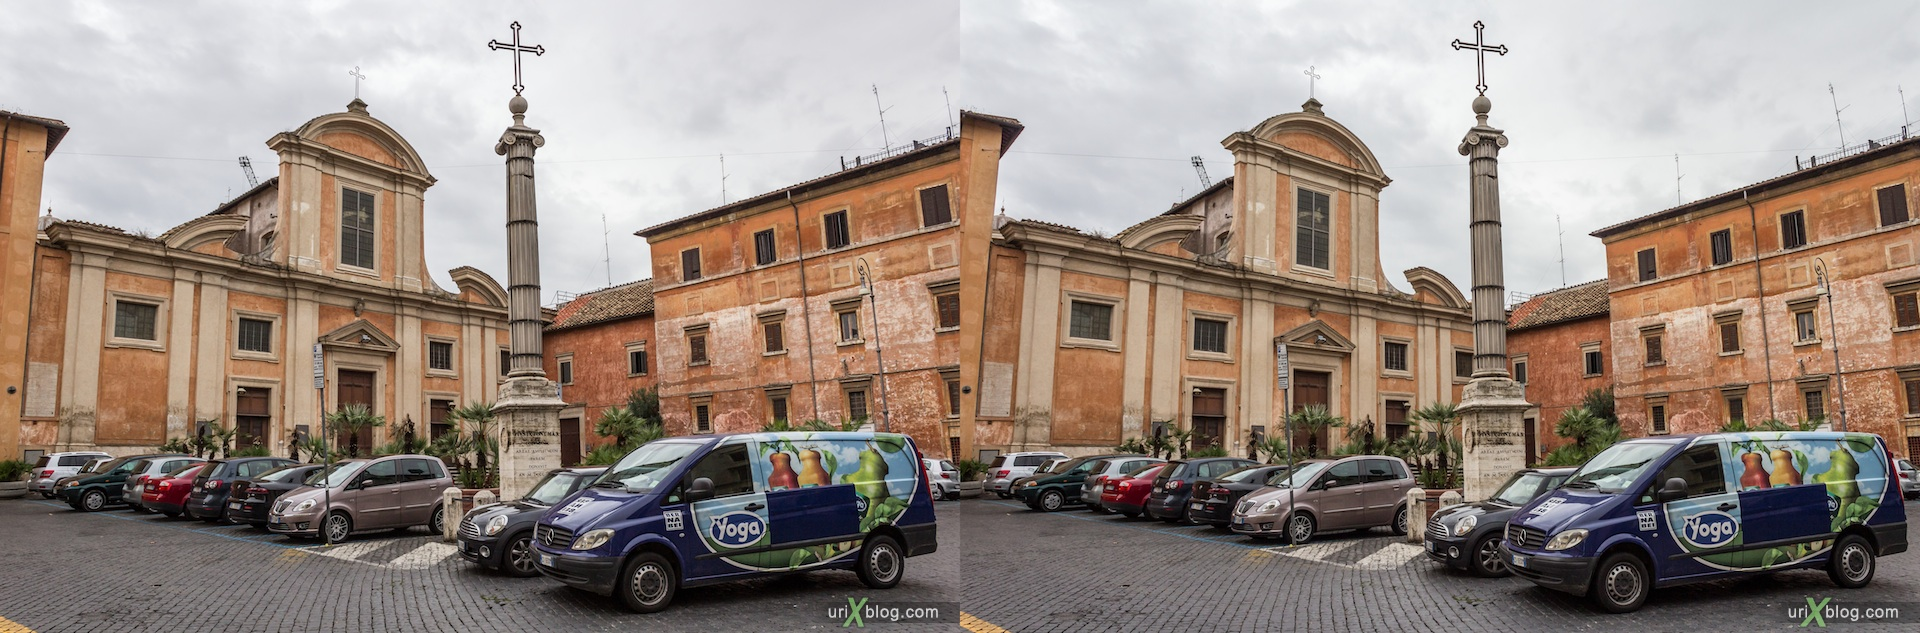 2012, San Francesco a Ripa church, Rome, Italy, cathedral, monastery, Christianity, Catholicism, 3D, stereo pair, cross-eyed, crossview, cross view stereo pair